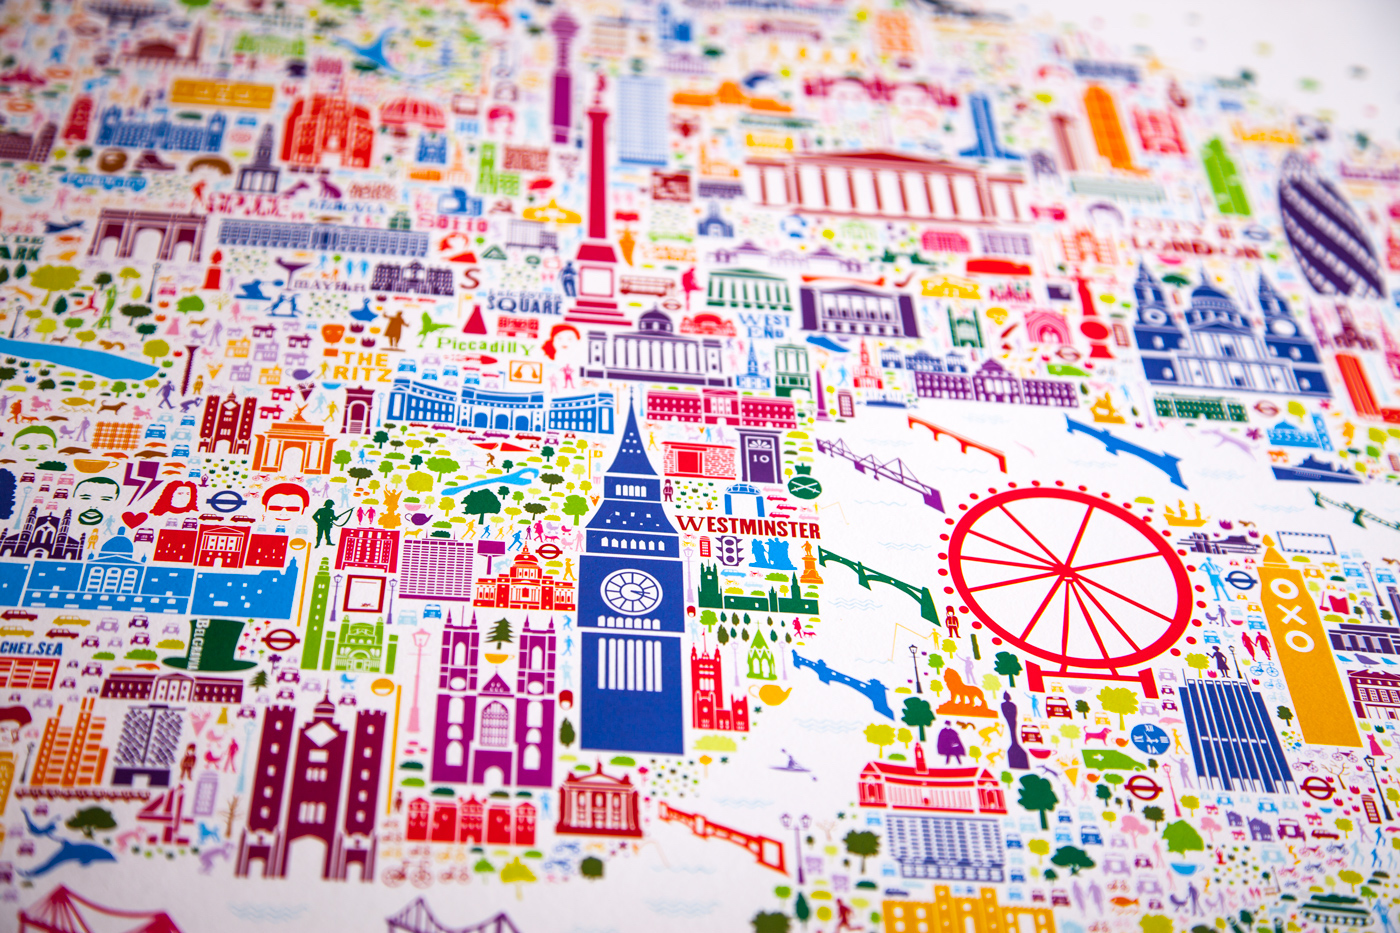 Great London Map.A Comprehensive And Colorful Map Of London Outlines The City S Great